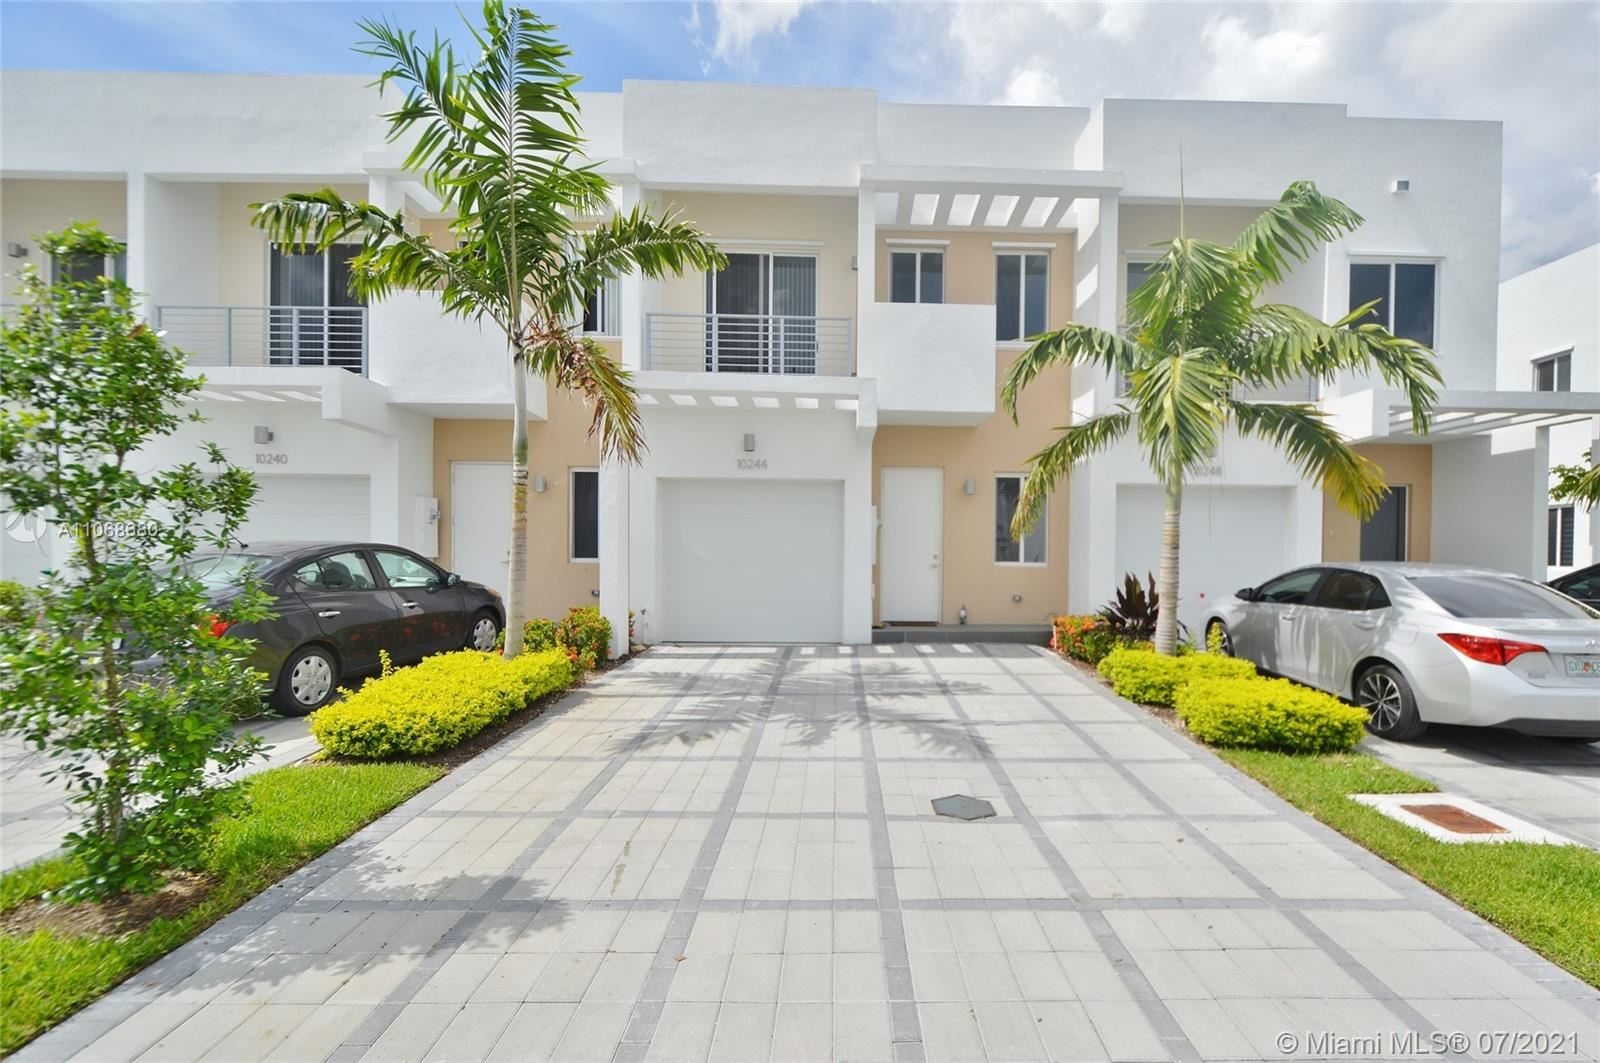 10244 NW 71st Ter, Doral, FL 33178 - #: A11068680